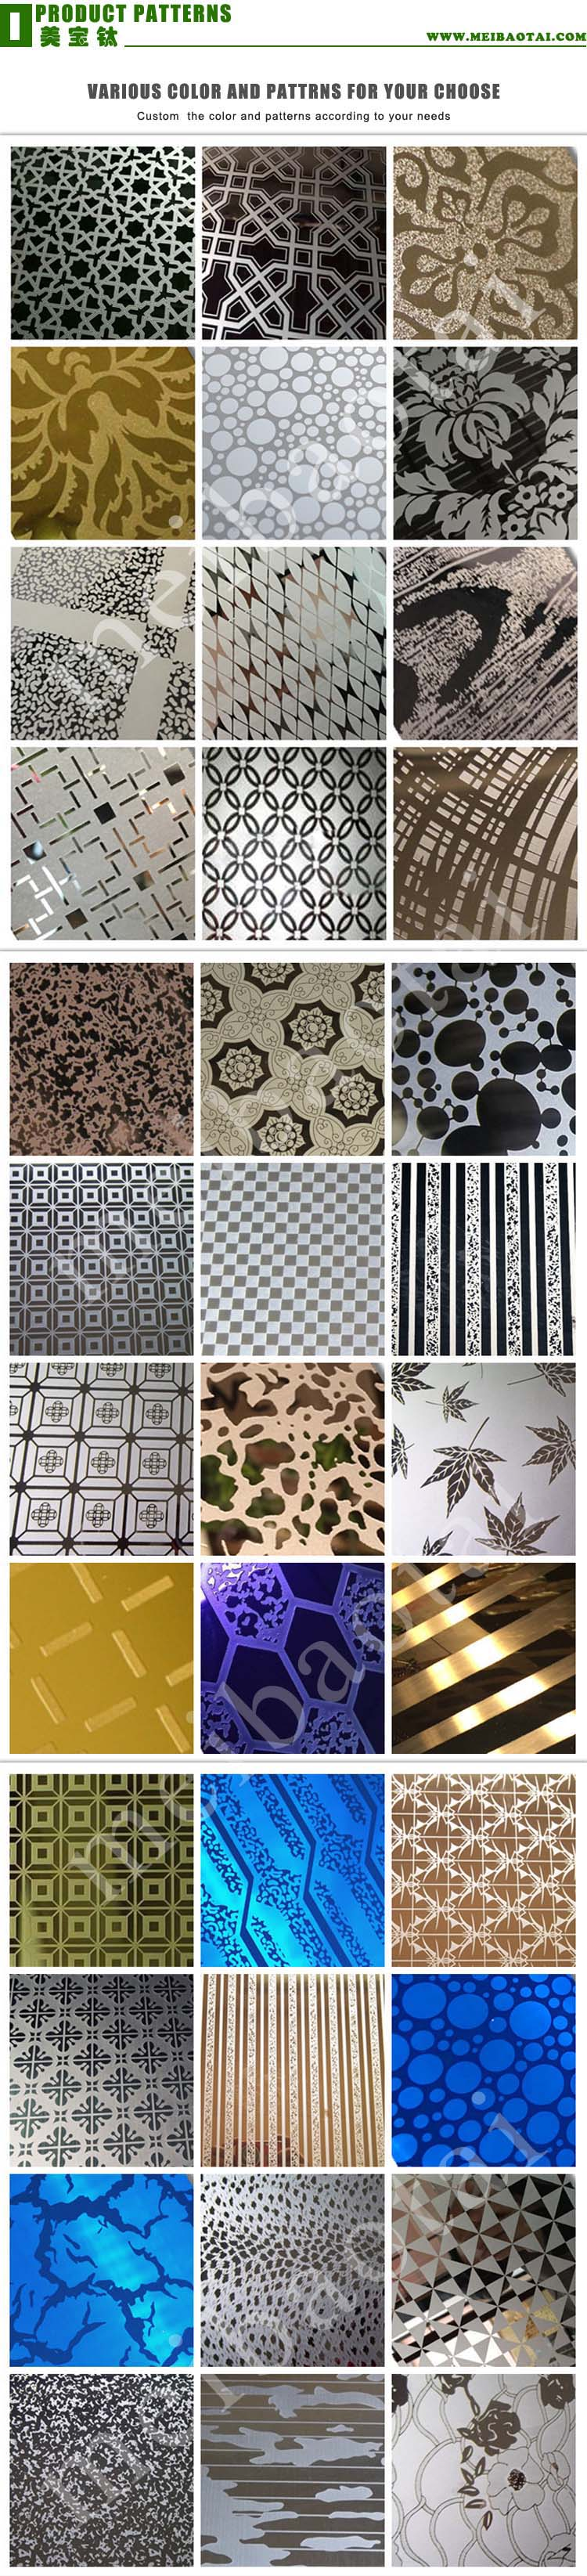 etching_products_patterns